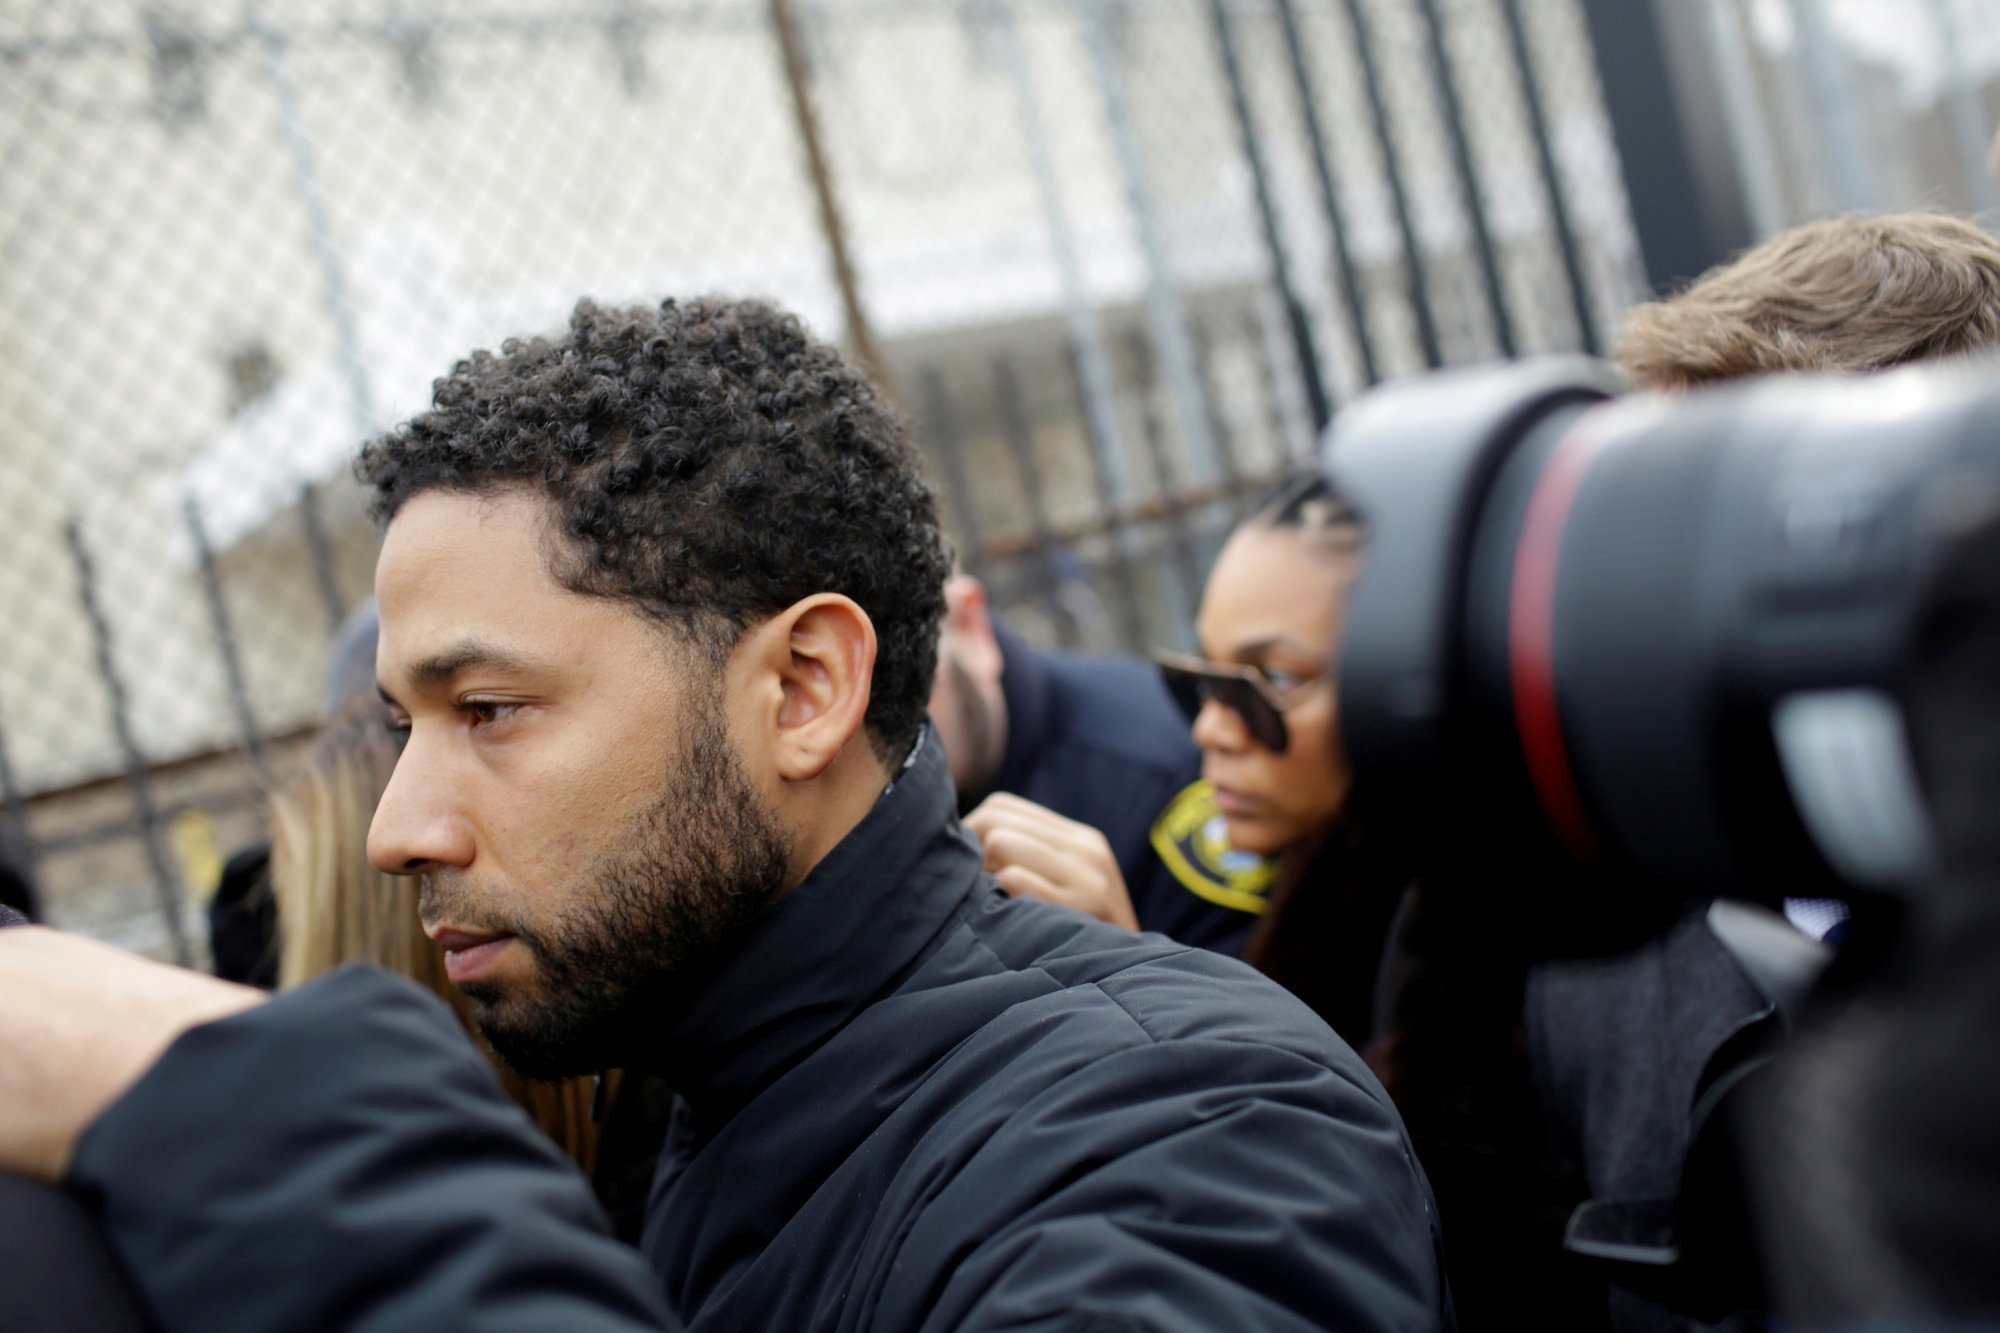 Jussie Smollett exits Cook County Department of Corrections after posting bail in Chicago Feb. 21.   REUTERS